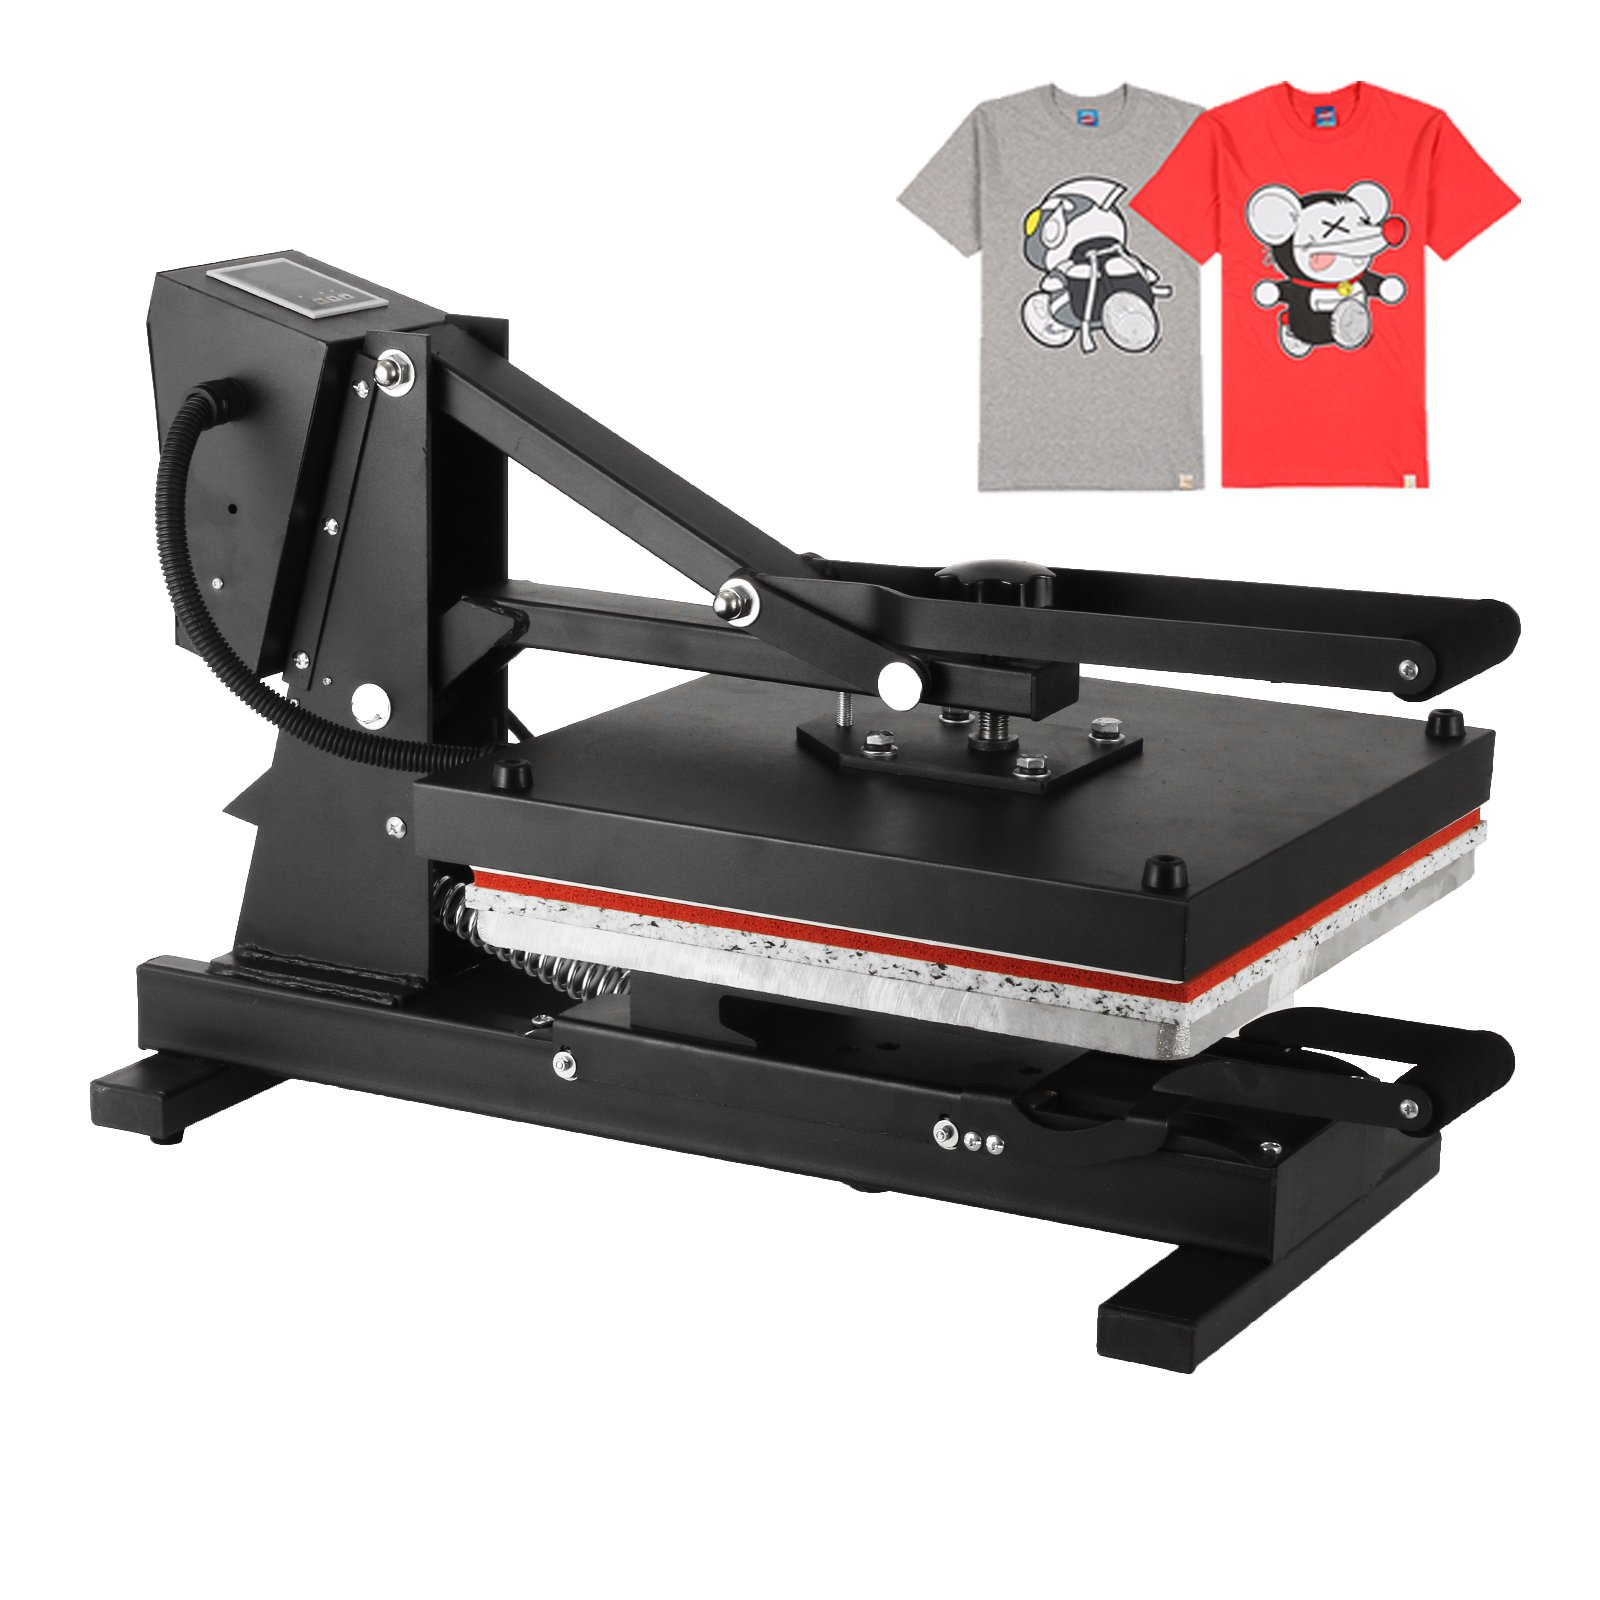 Shareprofit 16x20 Inch Heat Presses High Pressure Heat Press Machines Multifunctional Spring Balancer Heat Press Machine for T Shirts with Slide Out Tray (16x20 Inch European style Slide Rail)